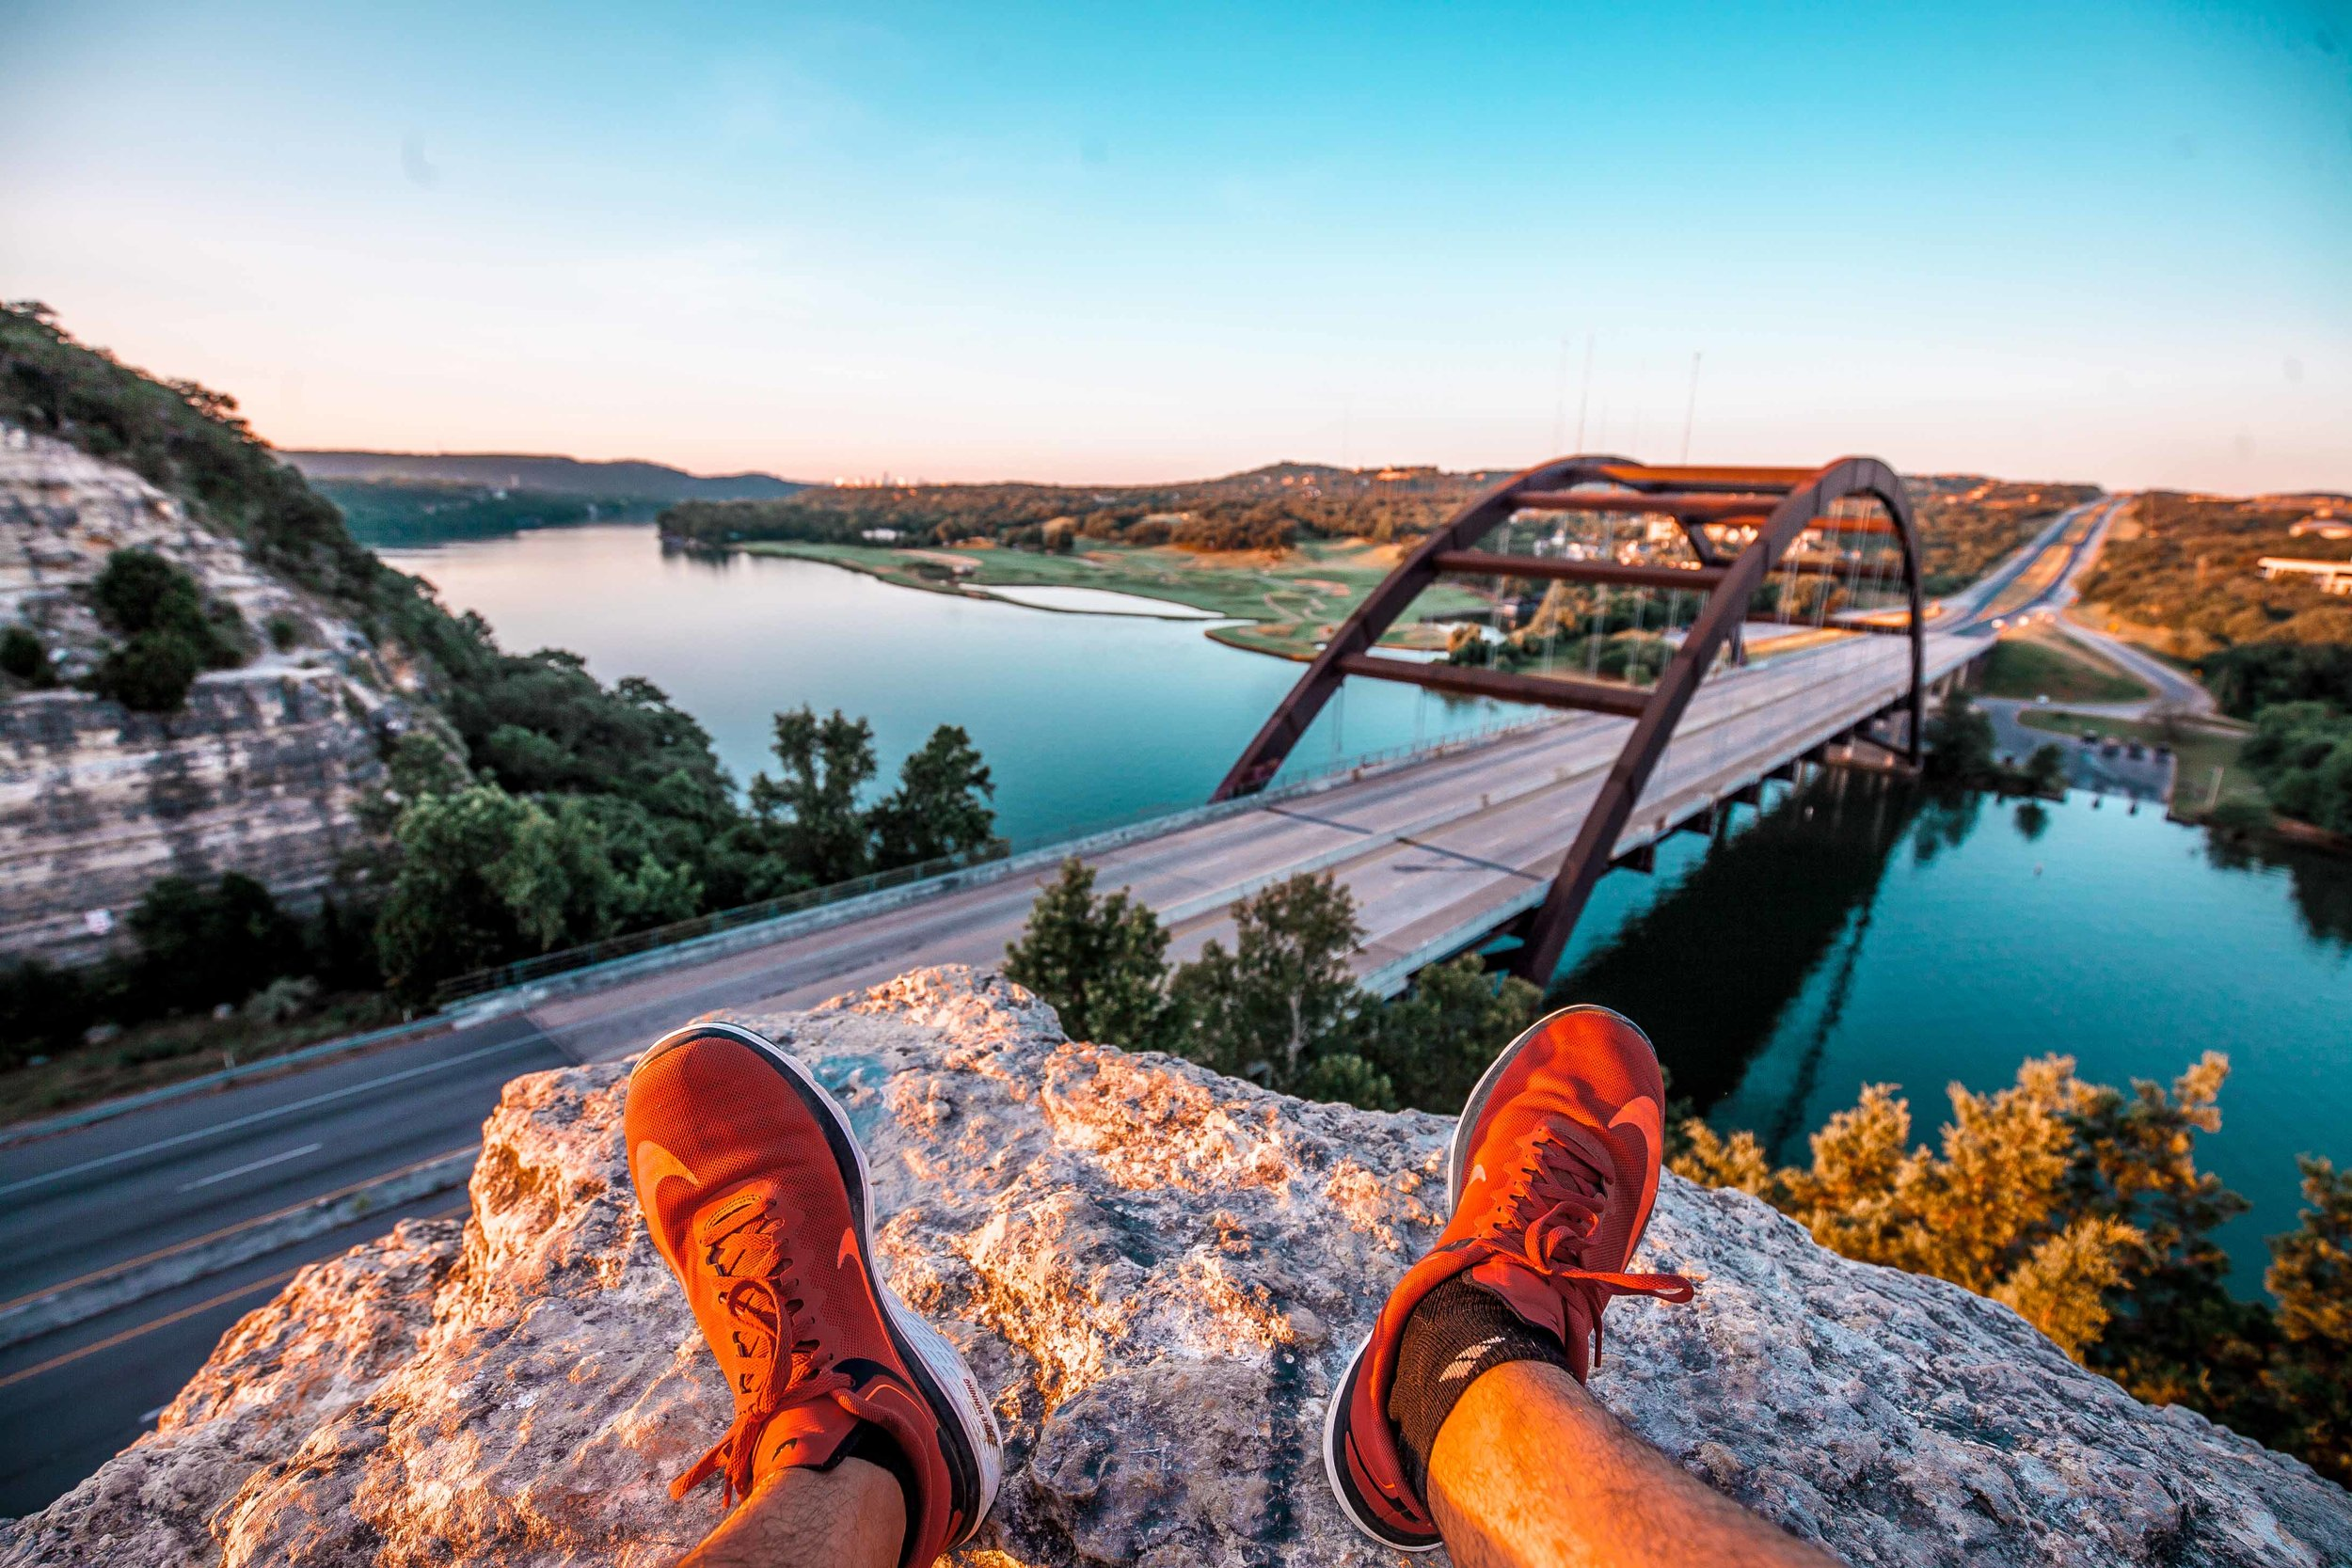 Overlooking the Colorado River and Austin's 360 Bridge - 2017